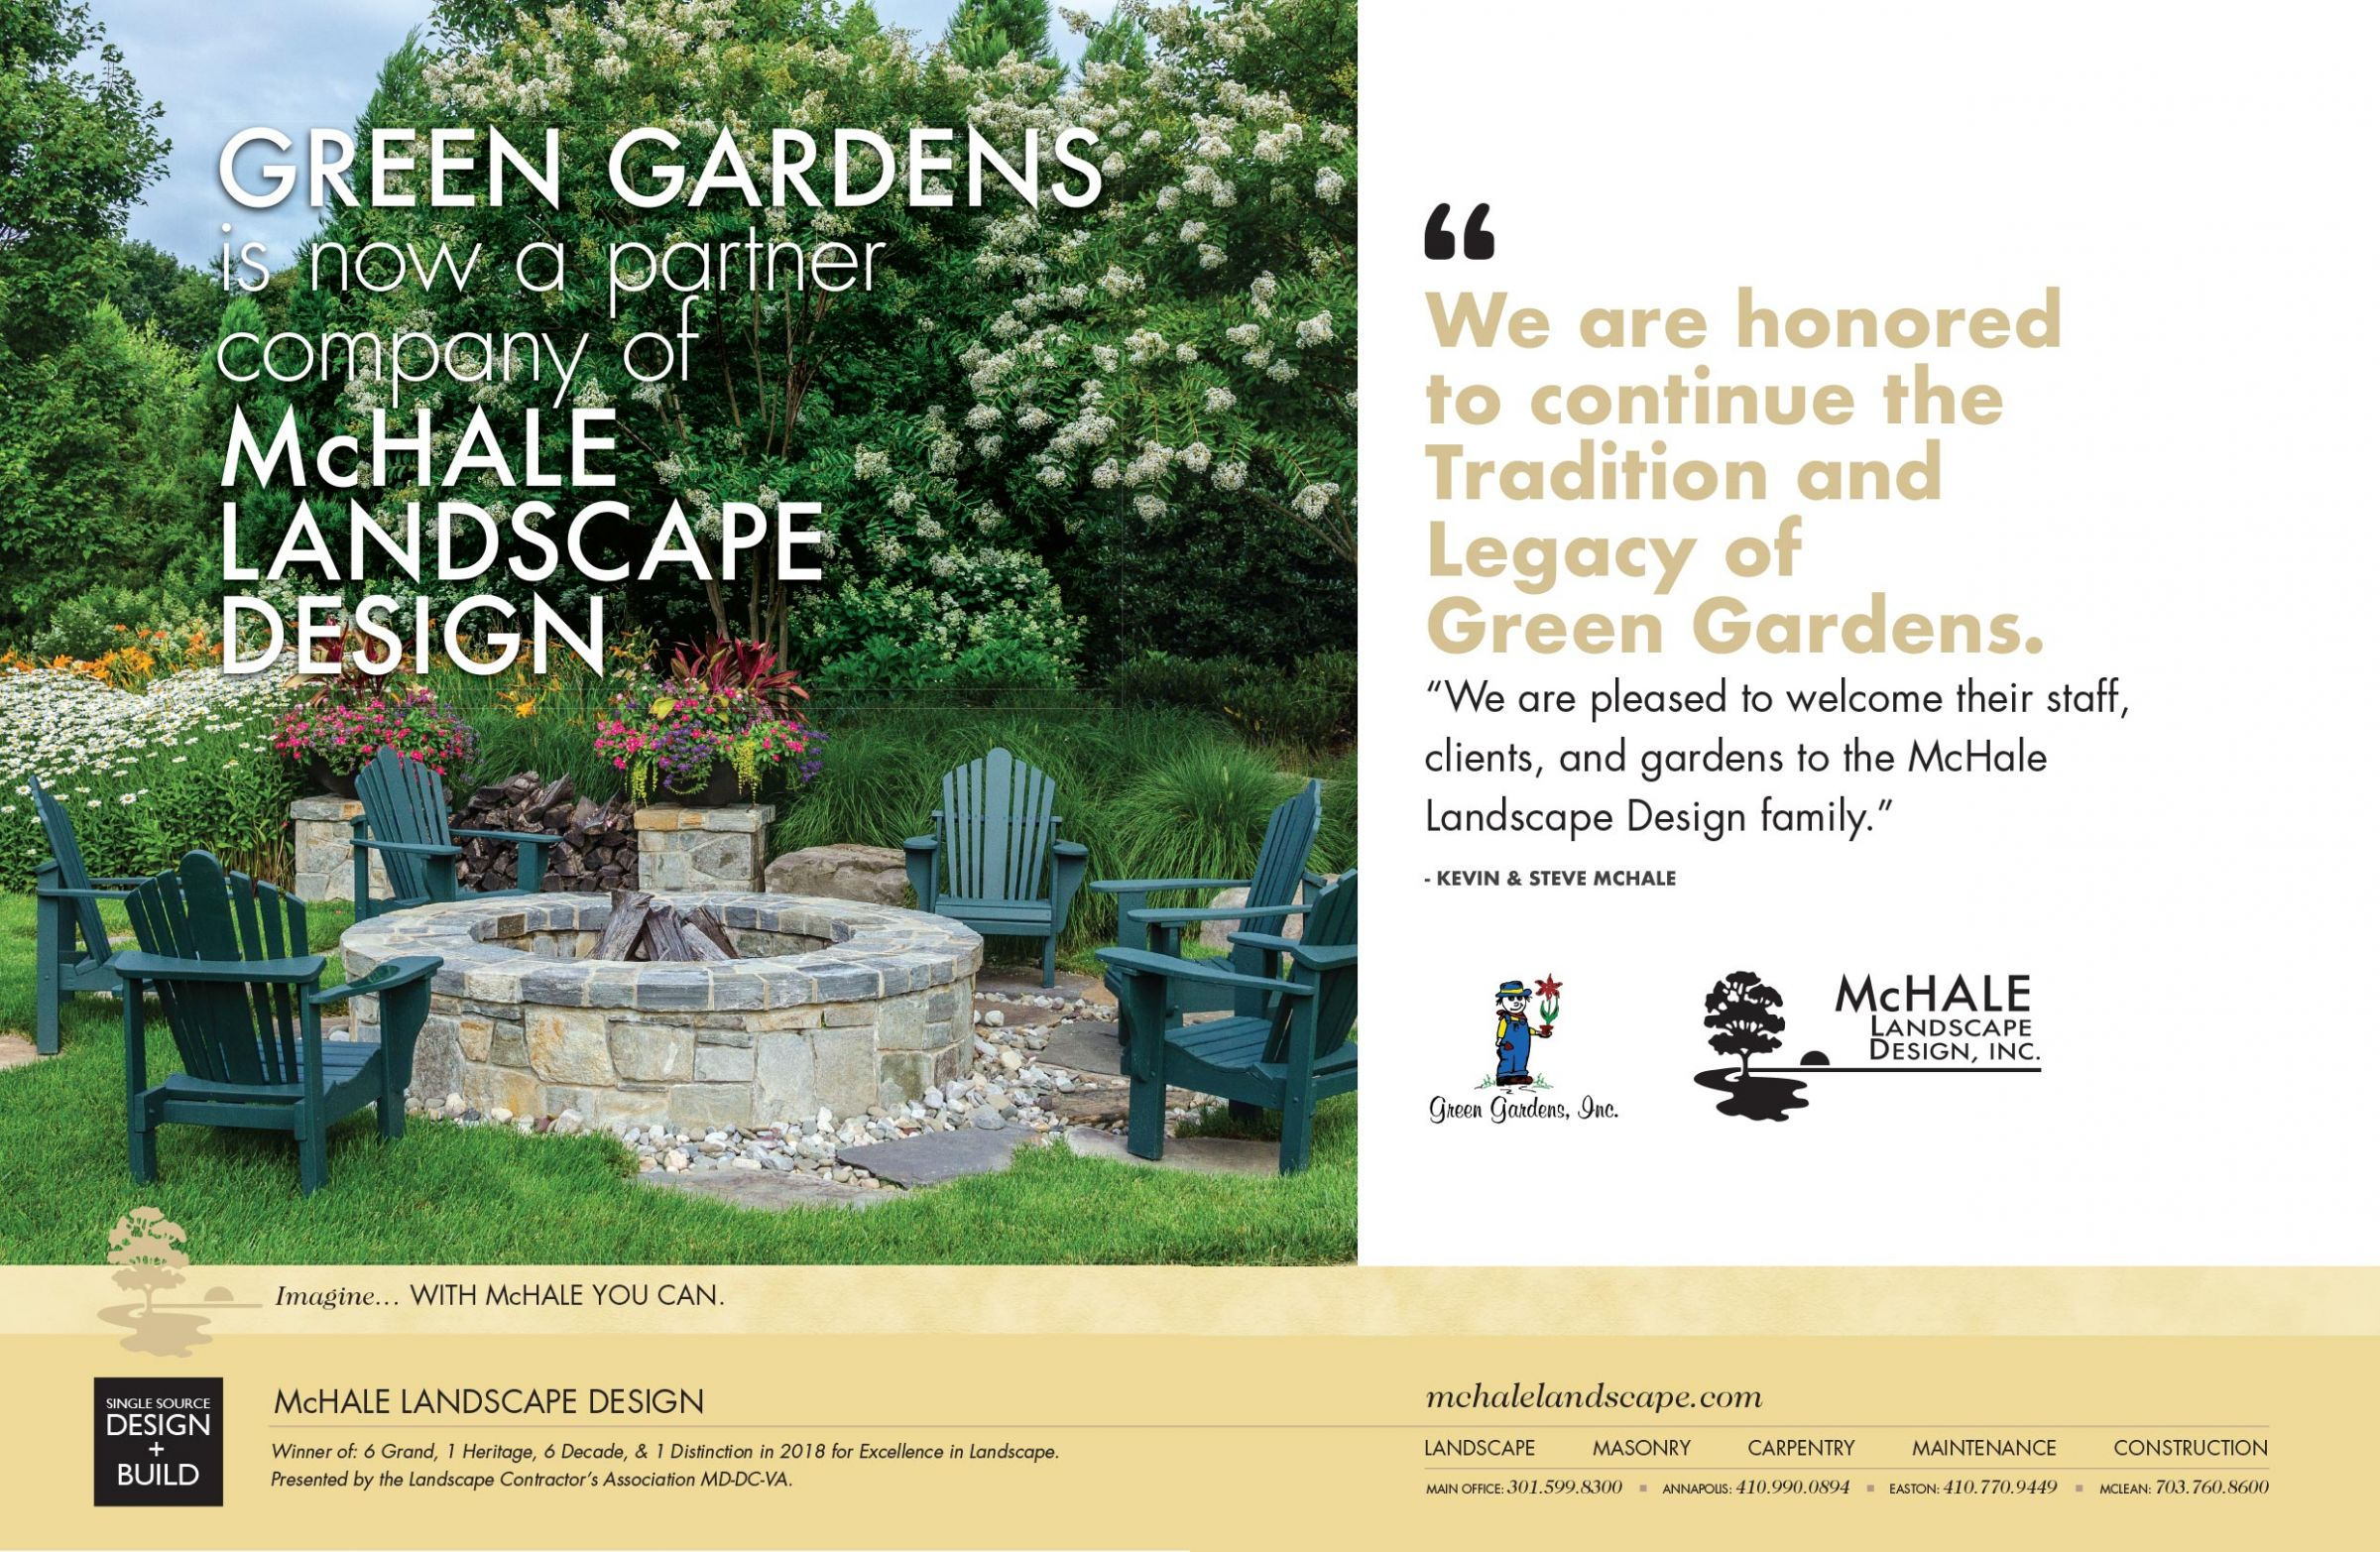 Announcing that Green Gardens is now a part of McHale Landscape Design